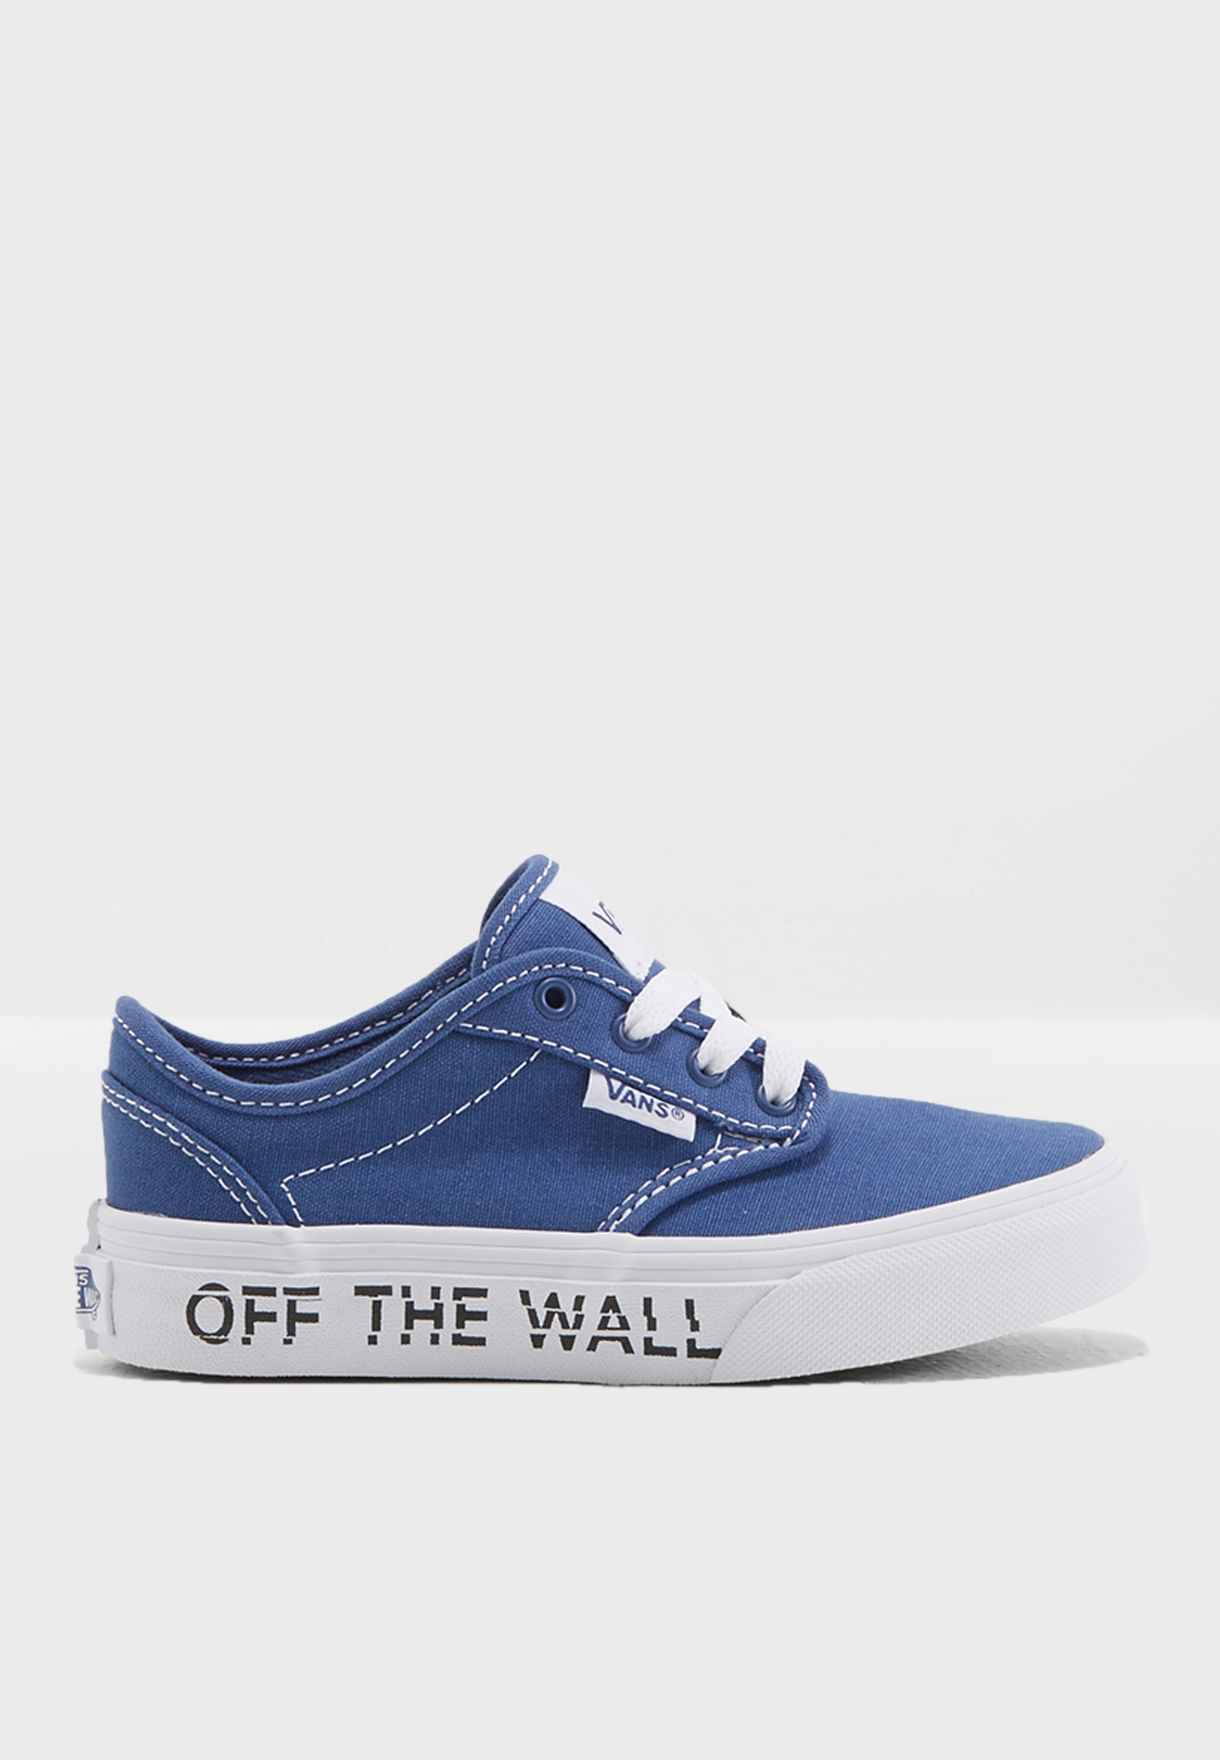 a468d8aebe8d55 Shop Vans blue Atwood Sneakers Youth 3Z9Q1S for Kids in UAE ...